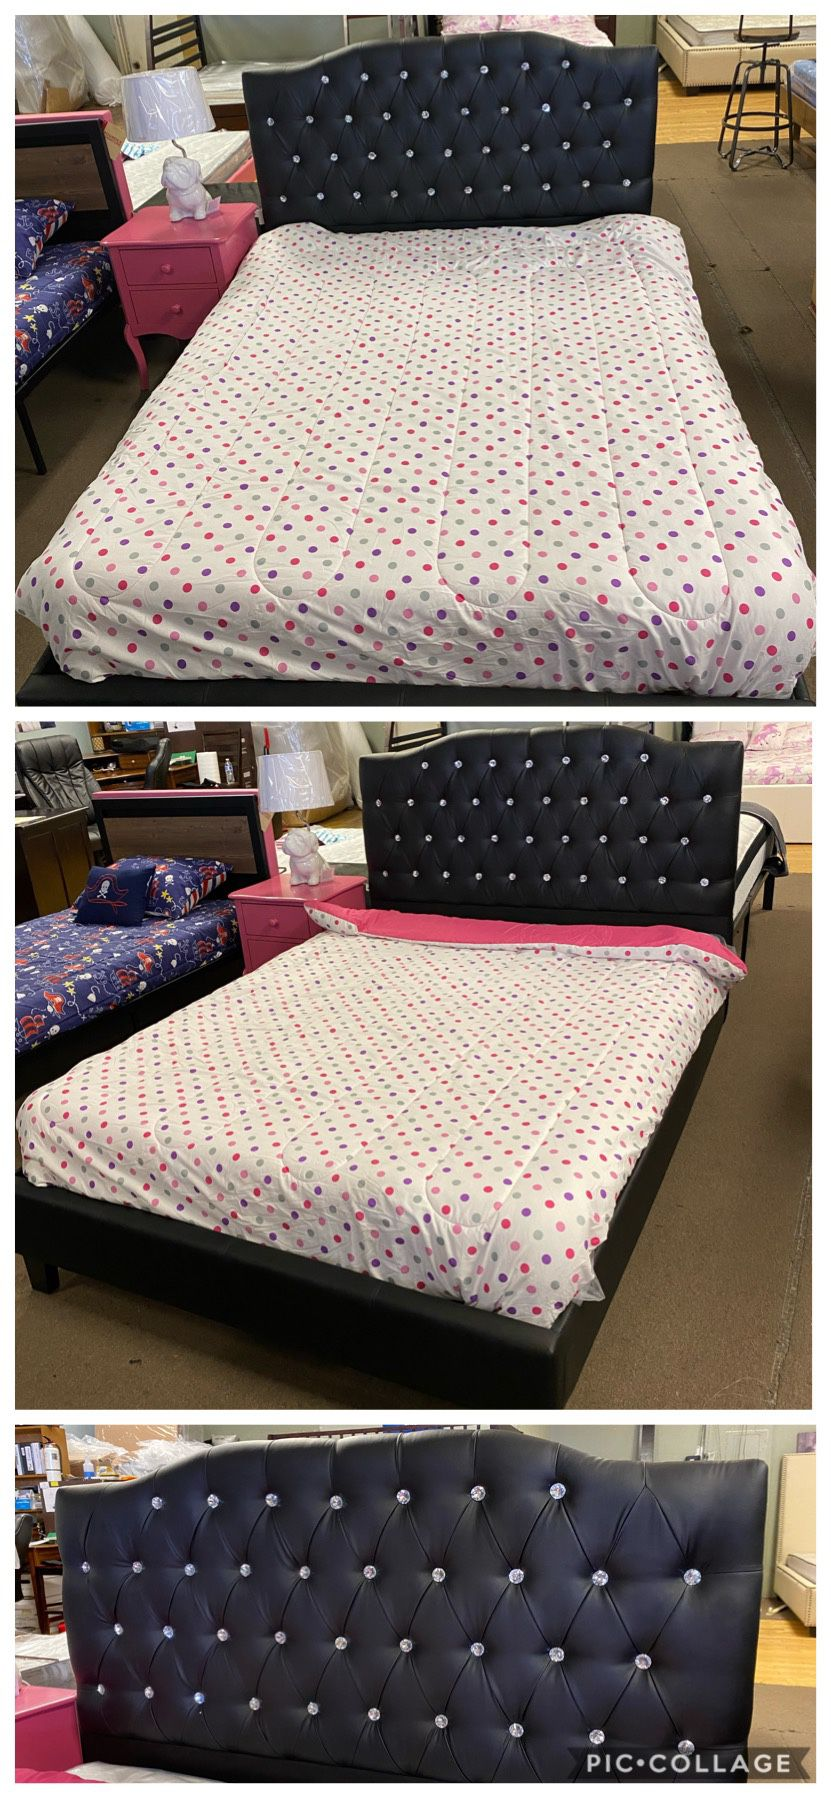 Full bed frame and mattress